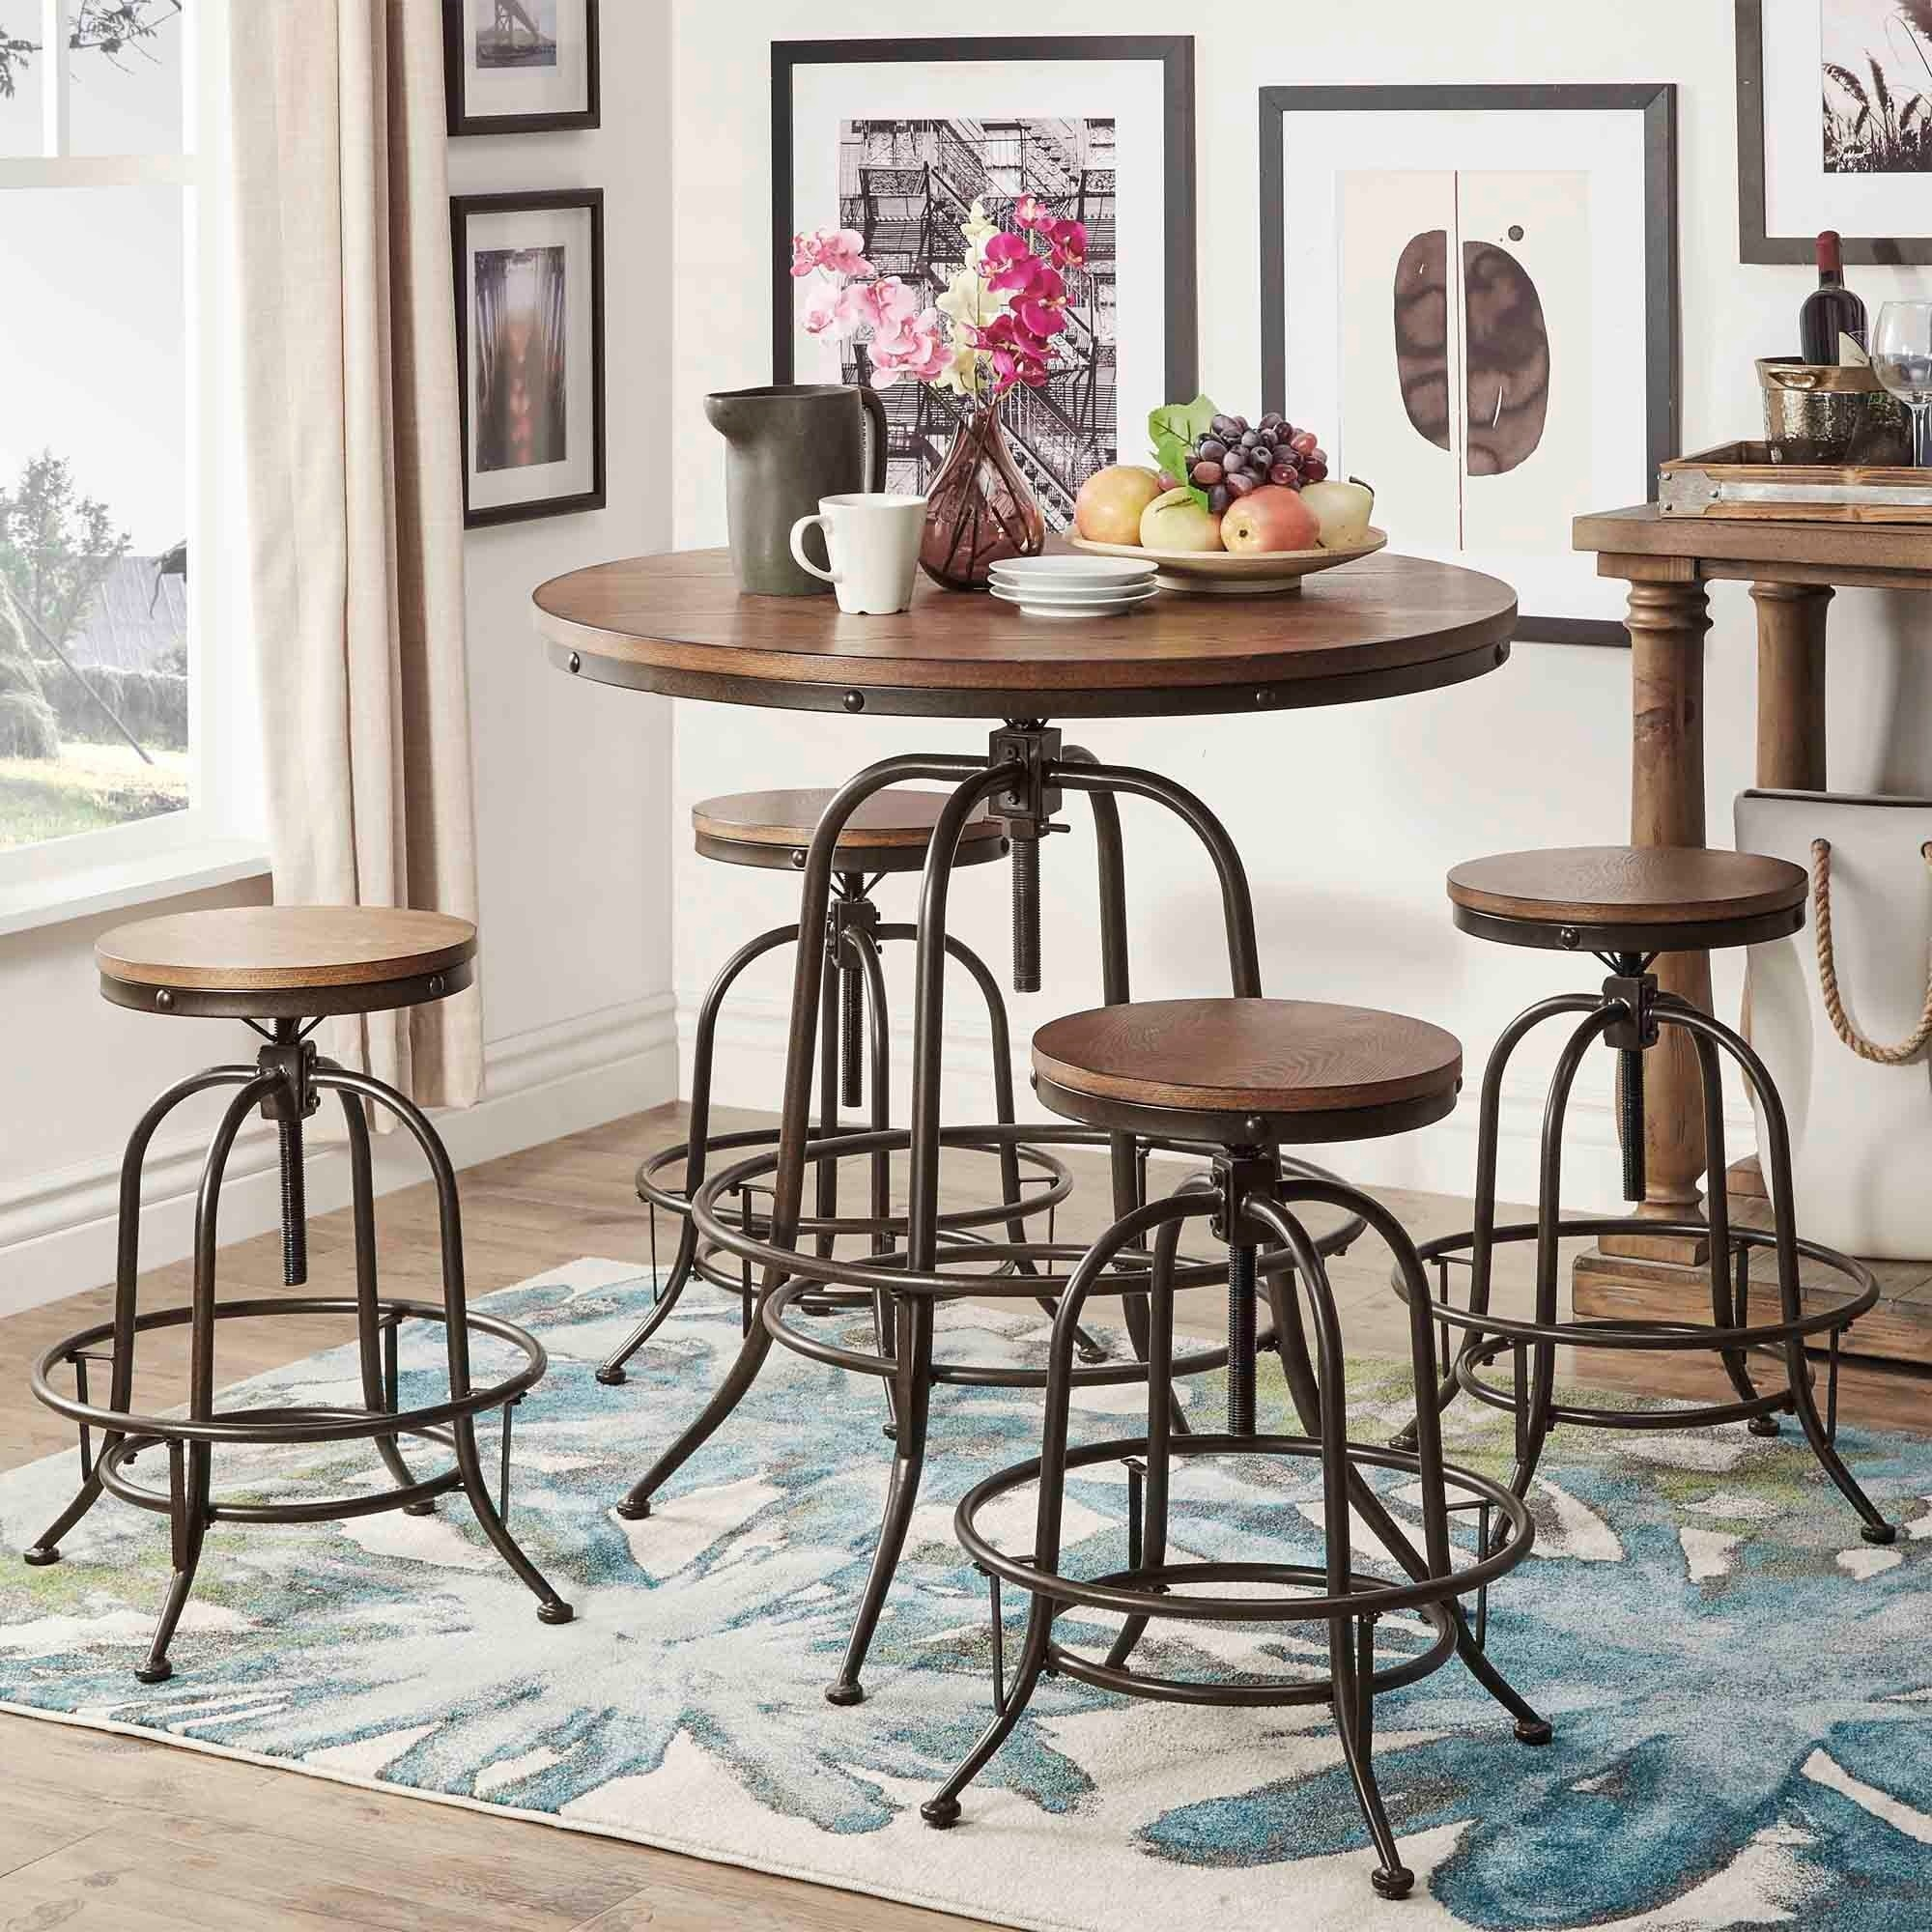 Berwick Industrial Style Round Counter Height Pub Adjustable Dining Set 1  Table With 2 Chairs